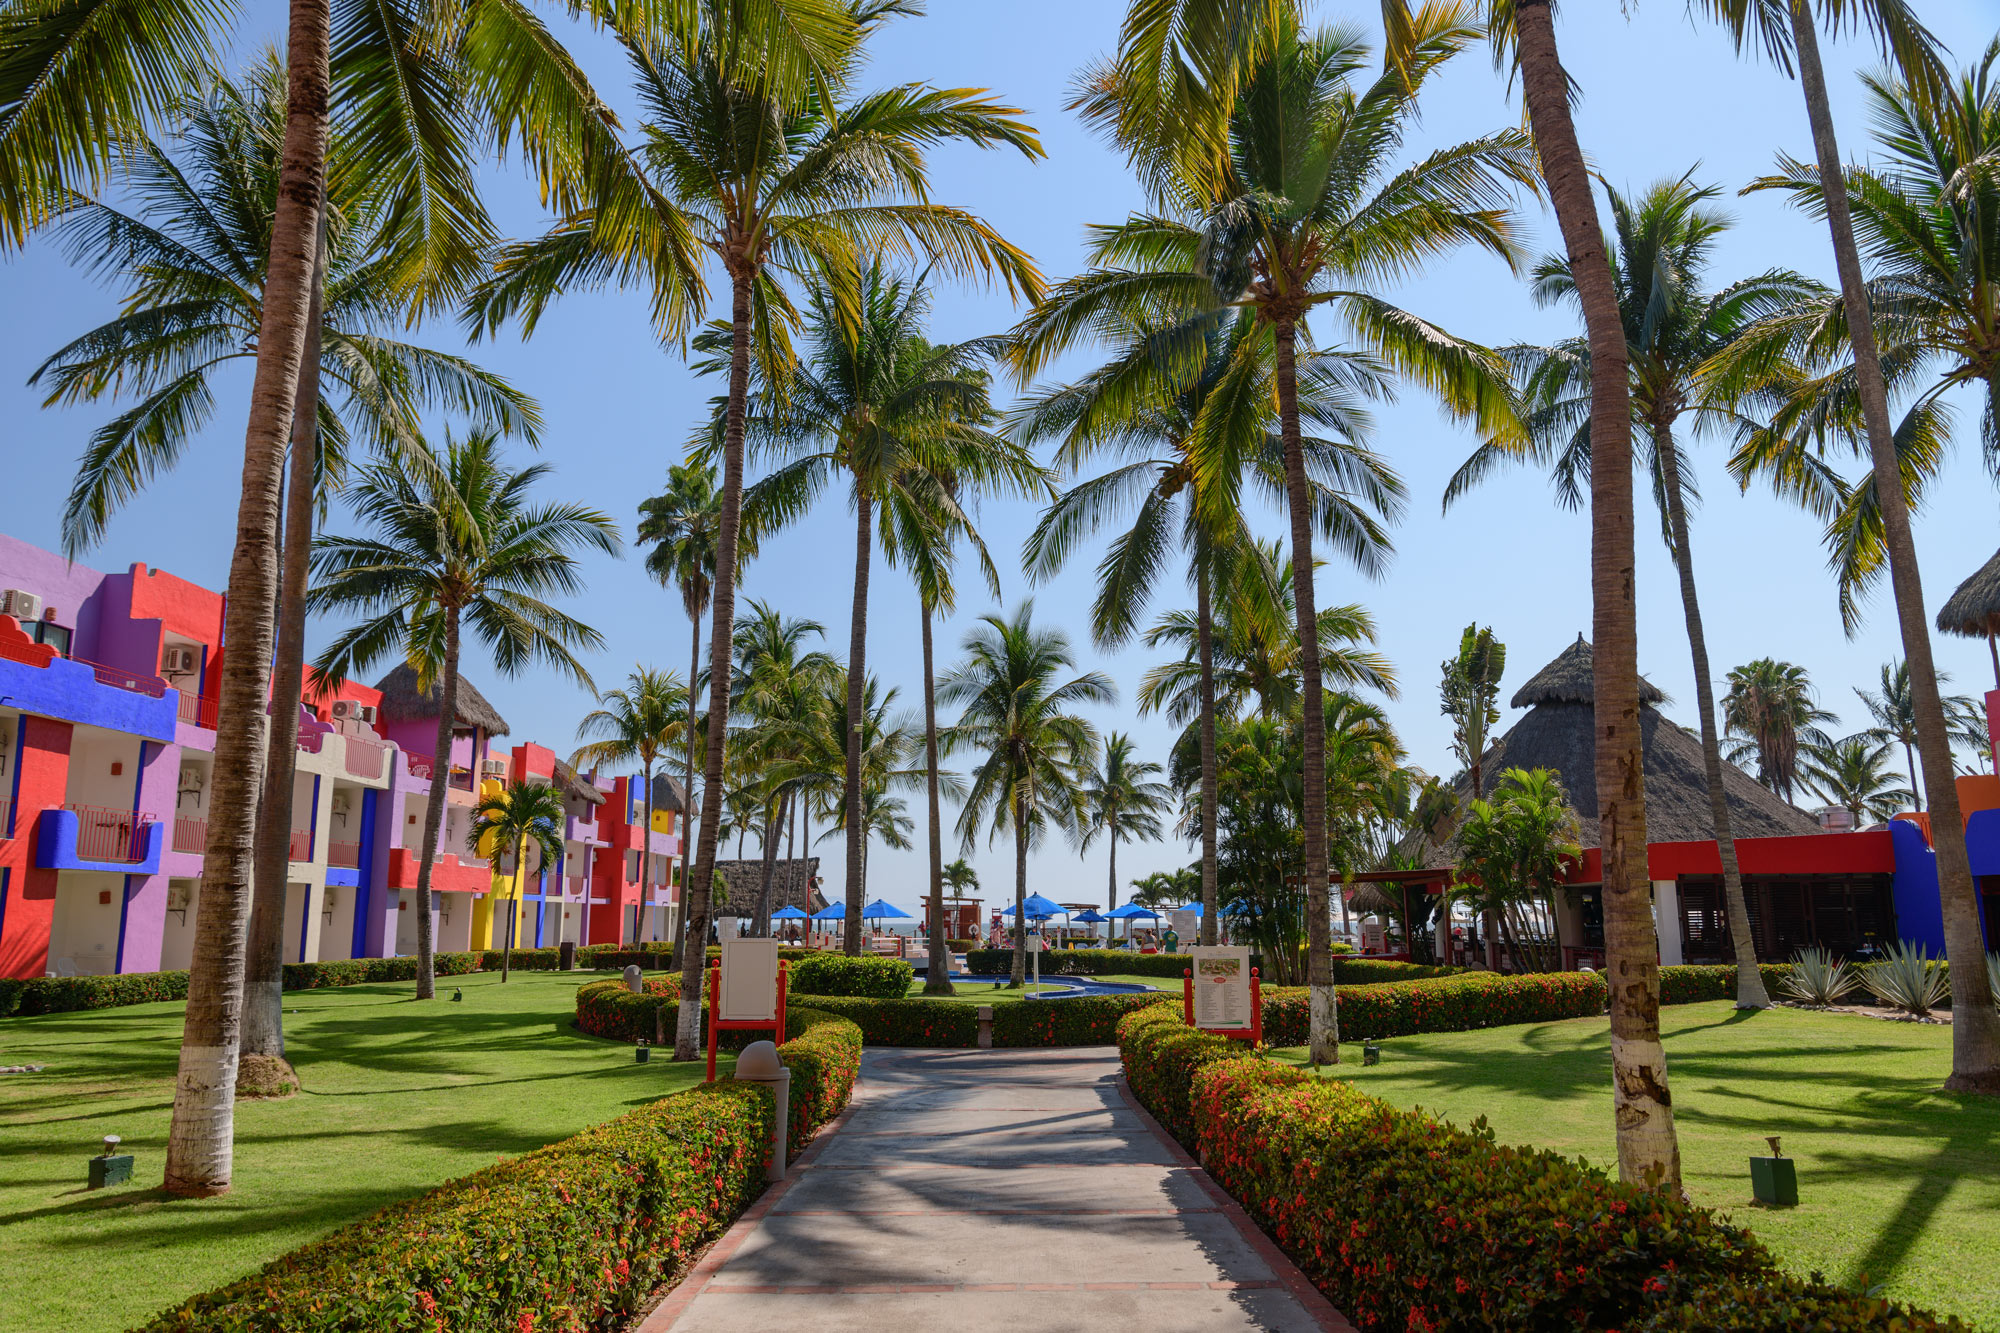 Rental Car Canada >> Royal Decameron Complex - Riviera Nayarit | Transat